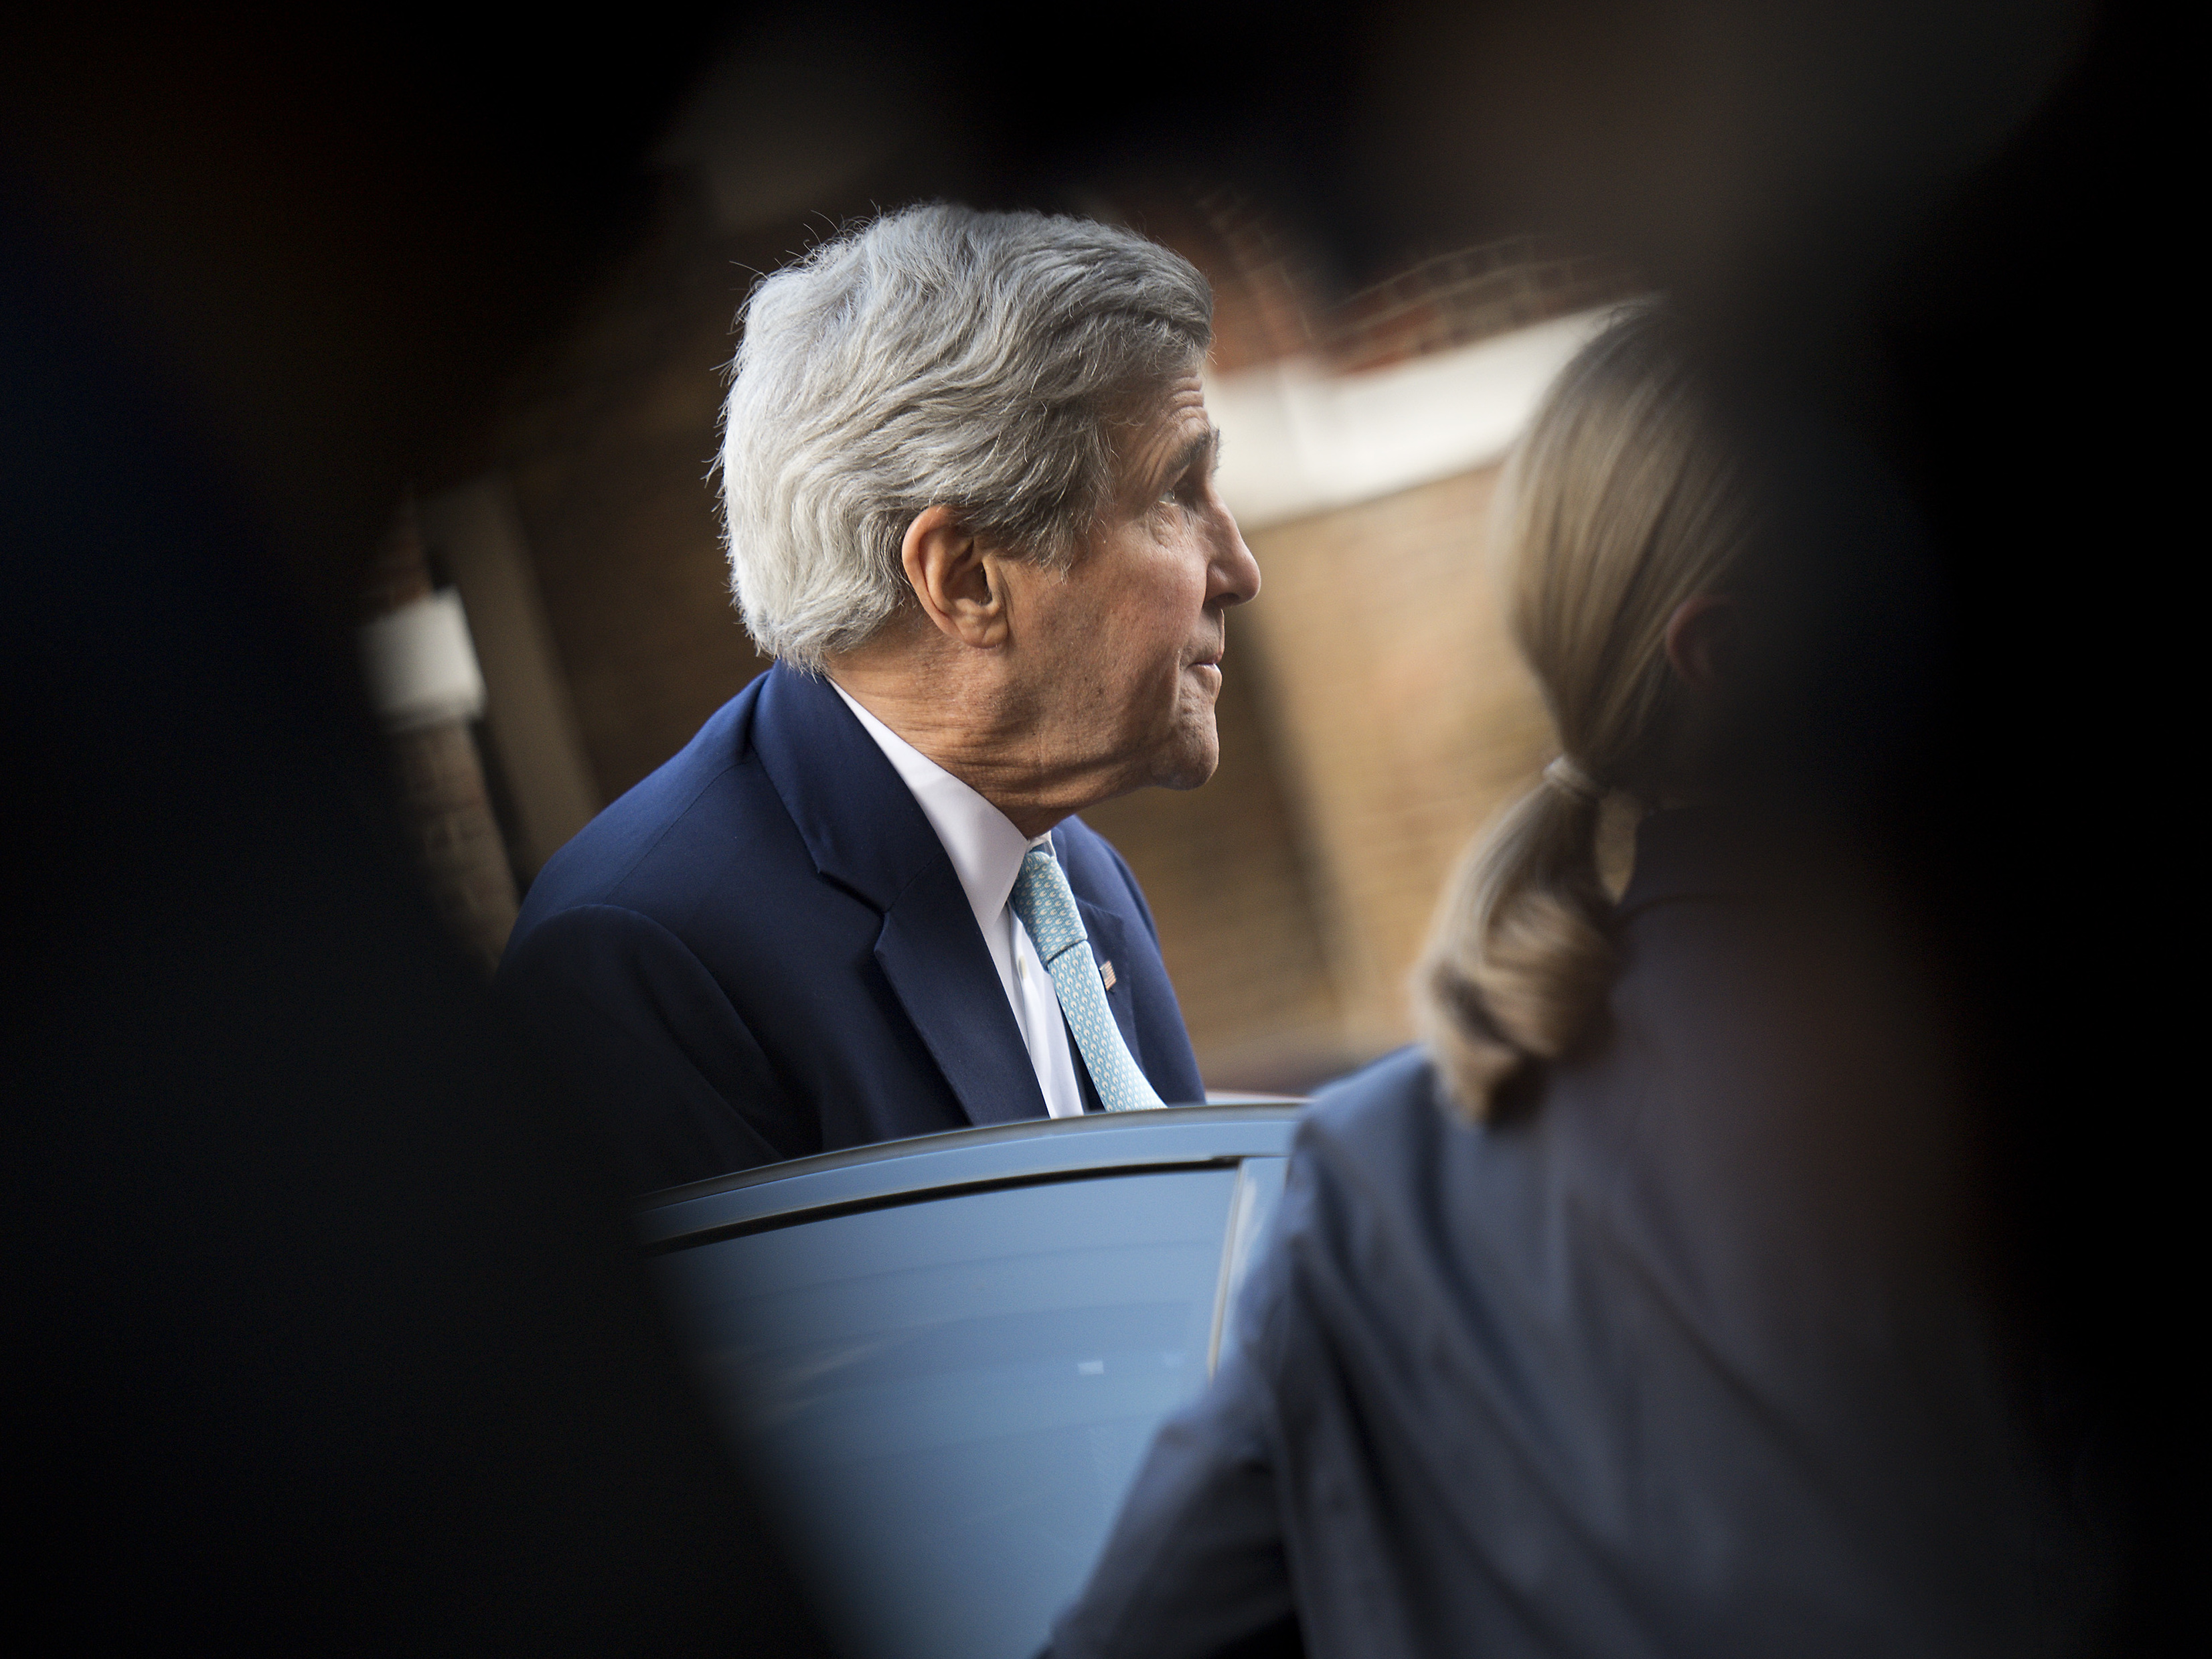 U.S. Secretary of State John Kerry, at Lancaster House in London on Sunday. Justin Tallis/AP